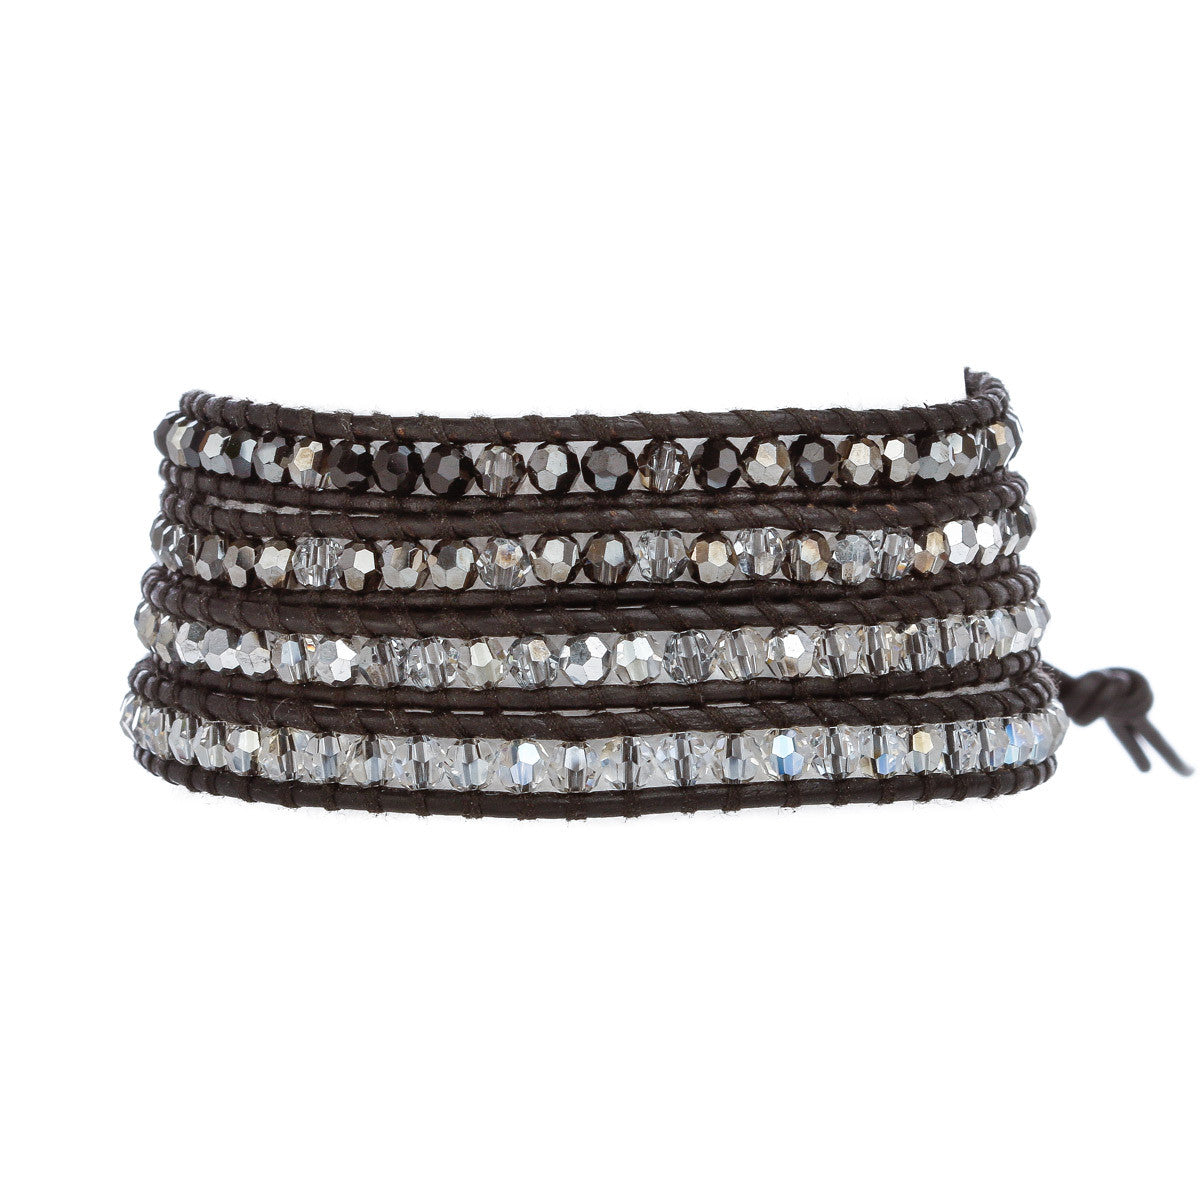 The Luu Wrap Bracelet - The Firestone Collection - Fashion Jewelry & Accessories